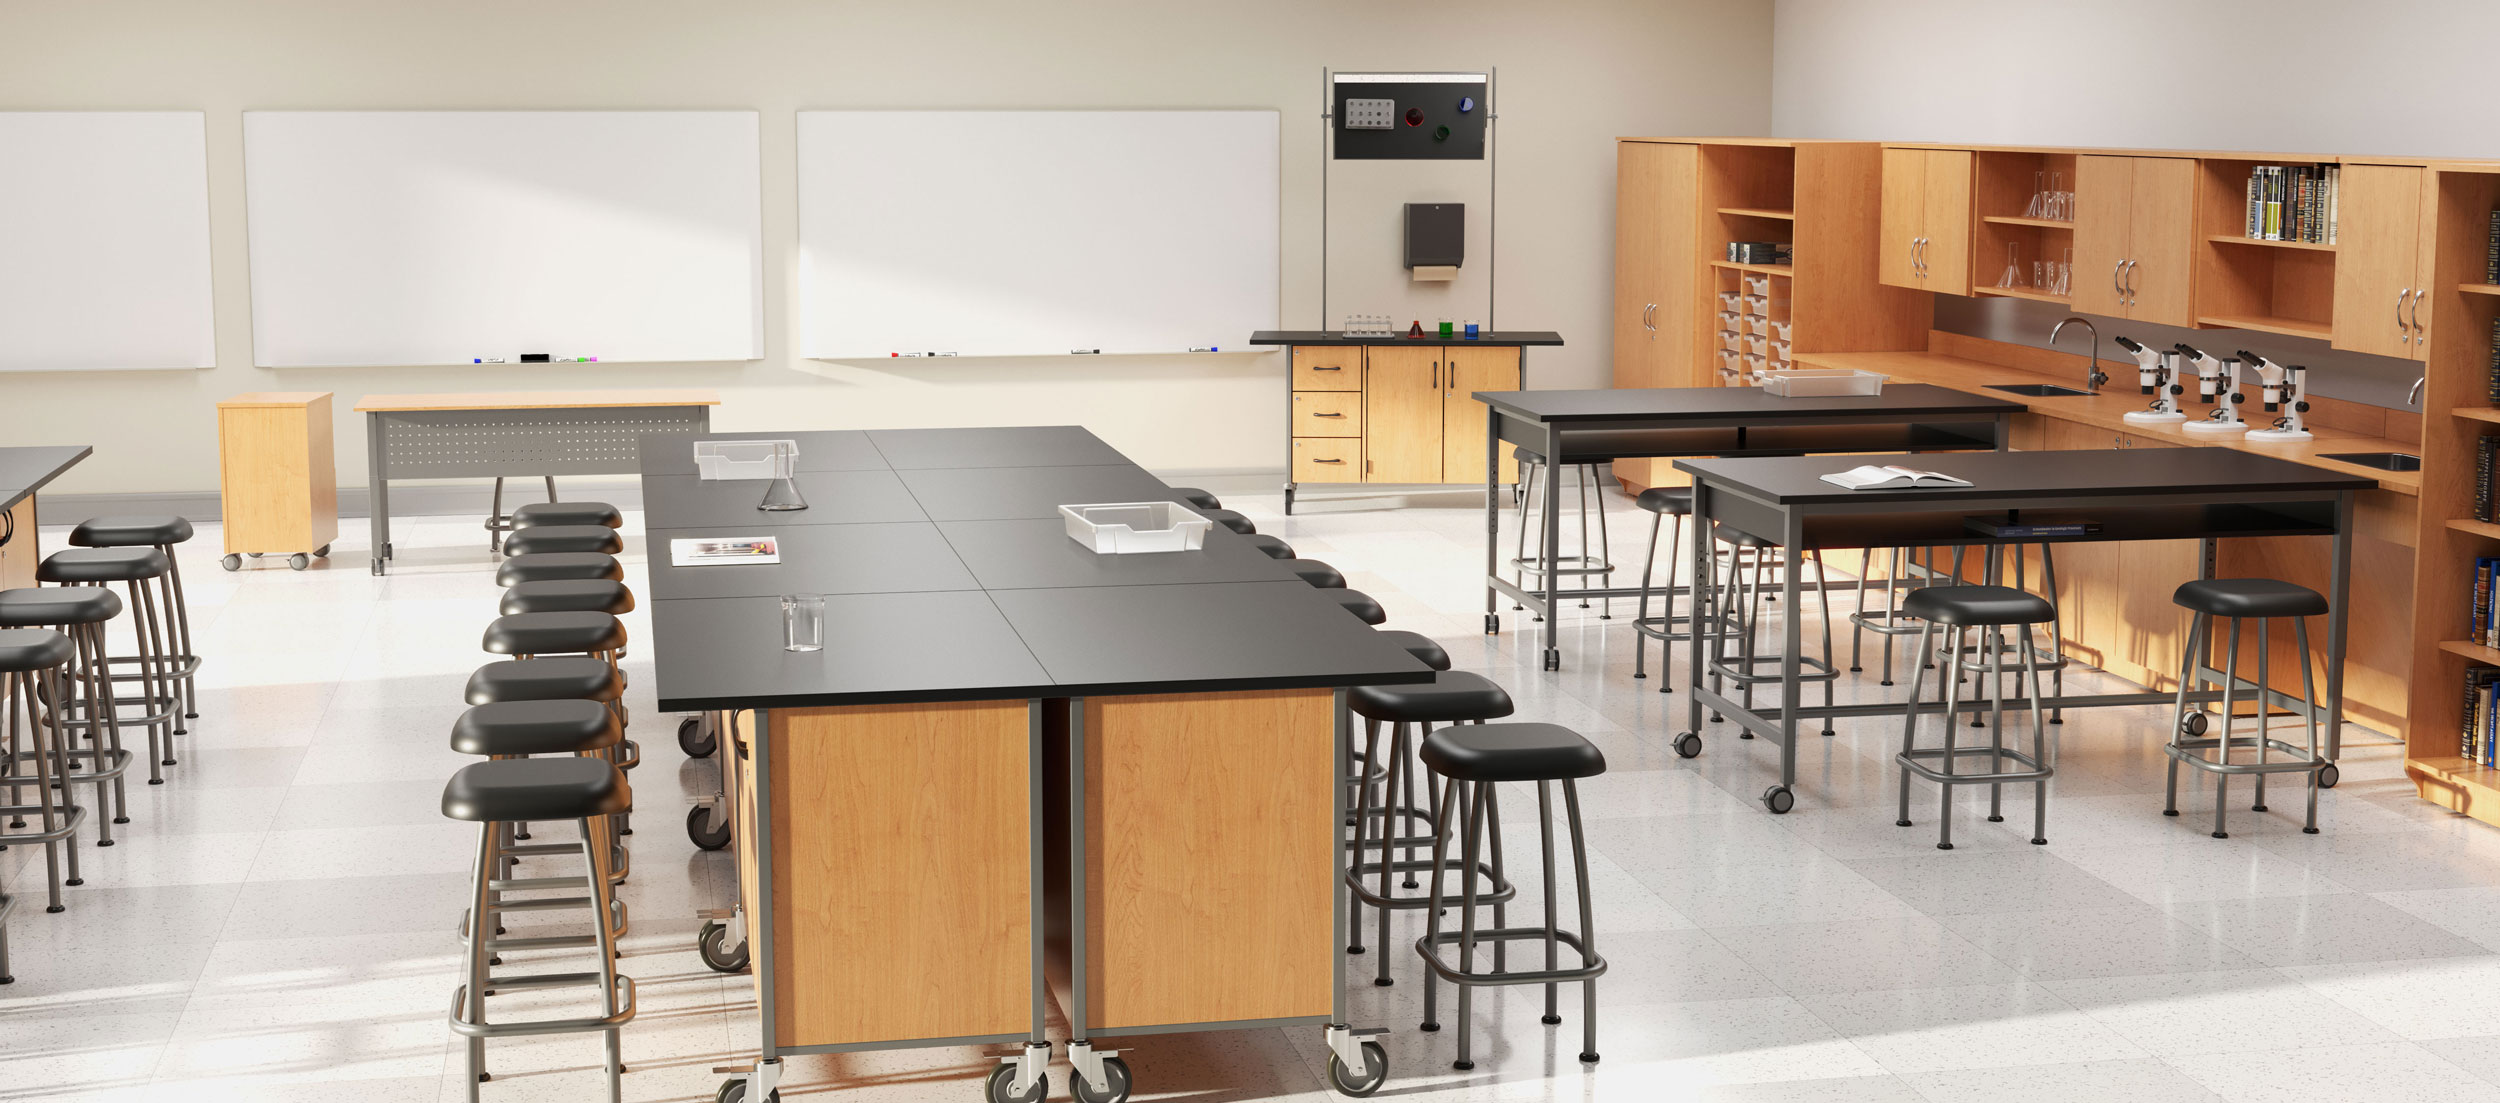 Rendering of the Science collection in the classroom